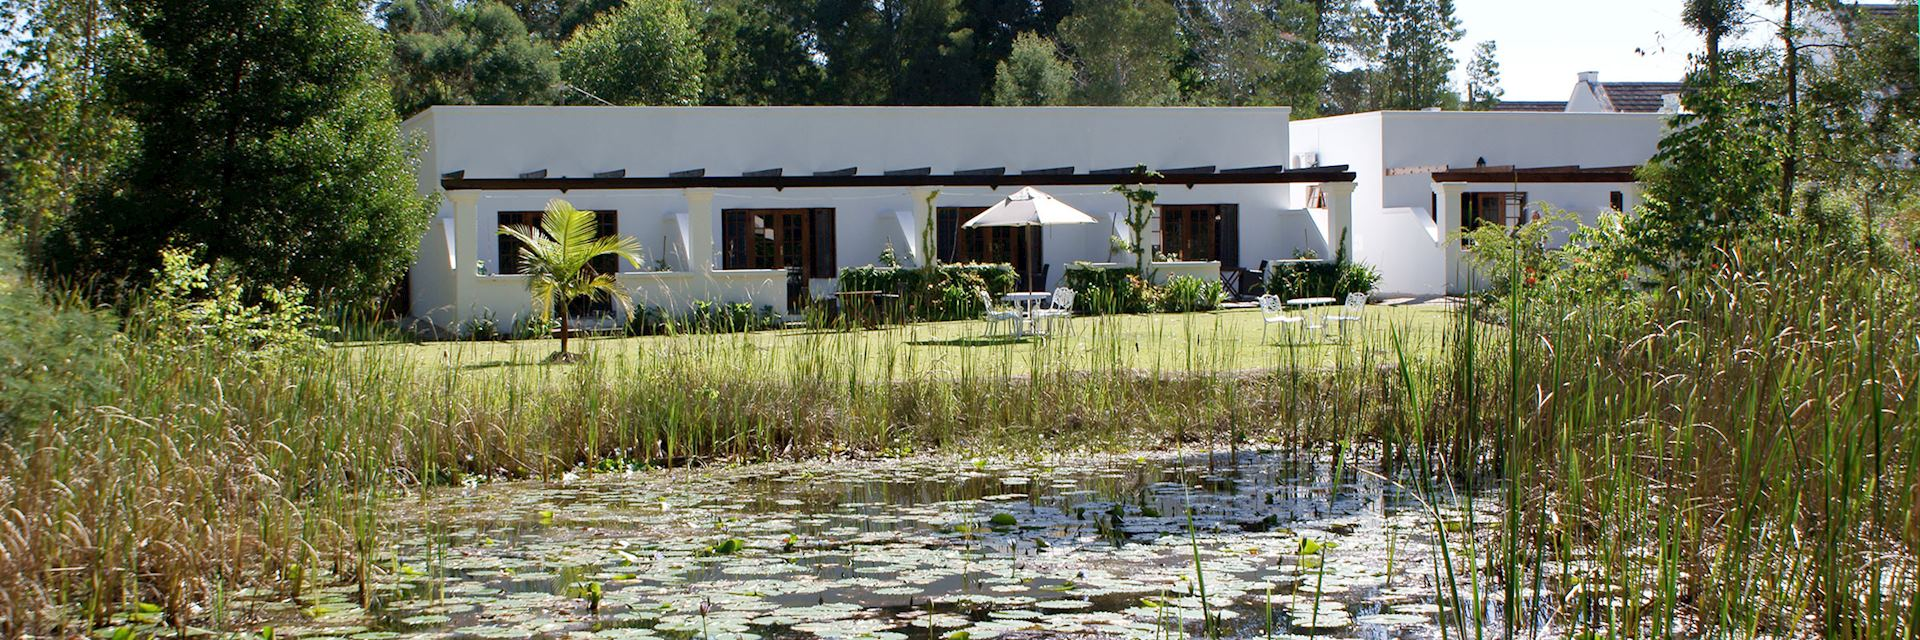 Lairds Lodge, South Africa